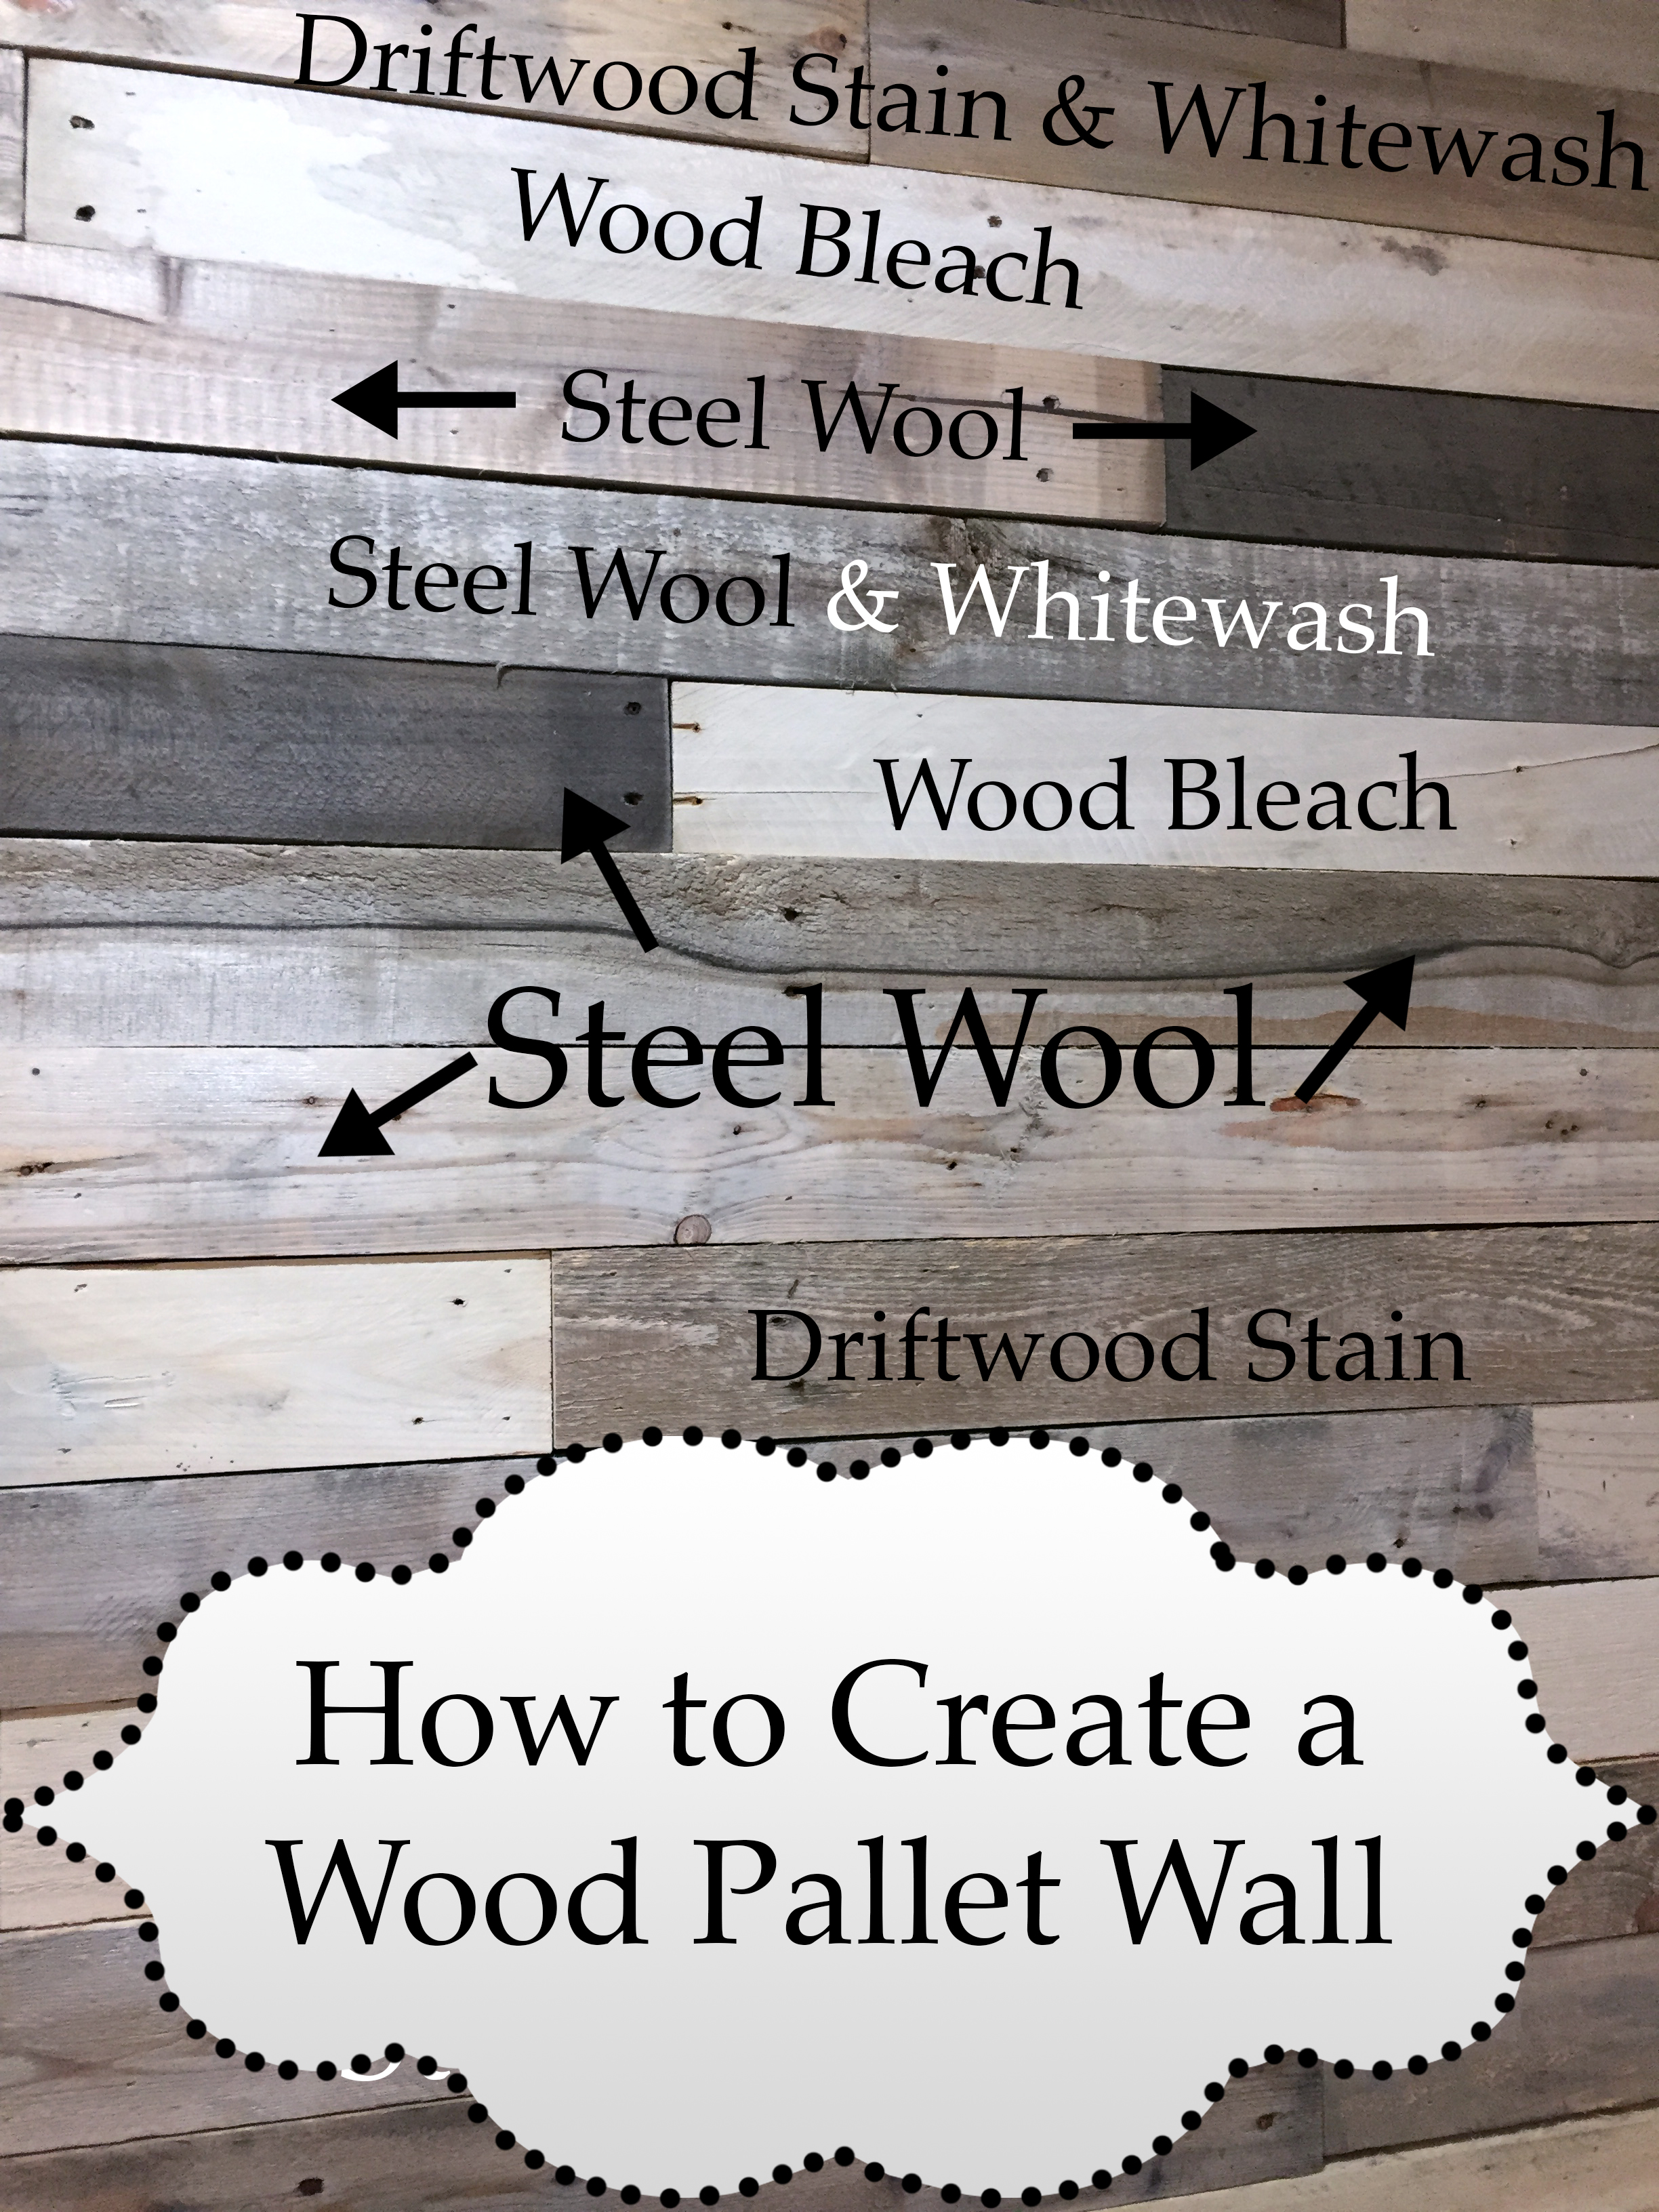 How To Build A Wood Pallet Wall - The Kelly Homestead